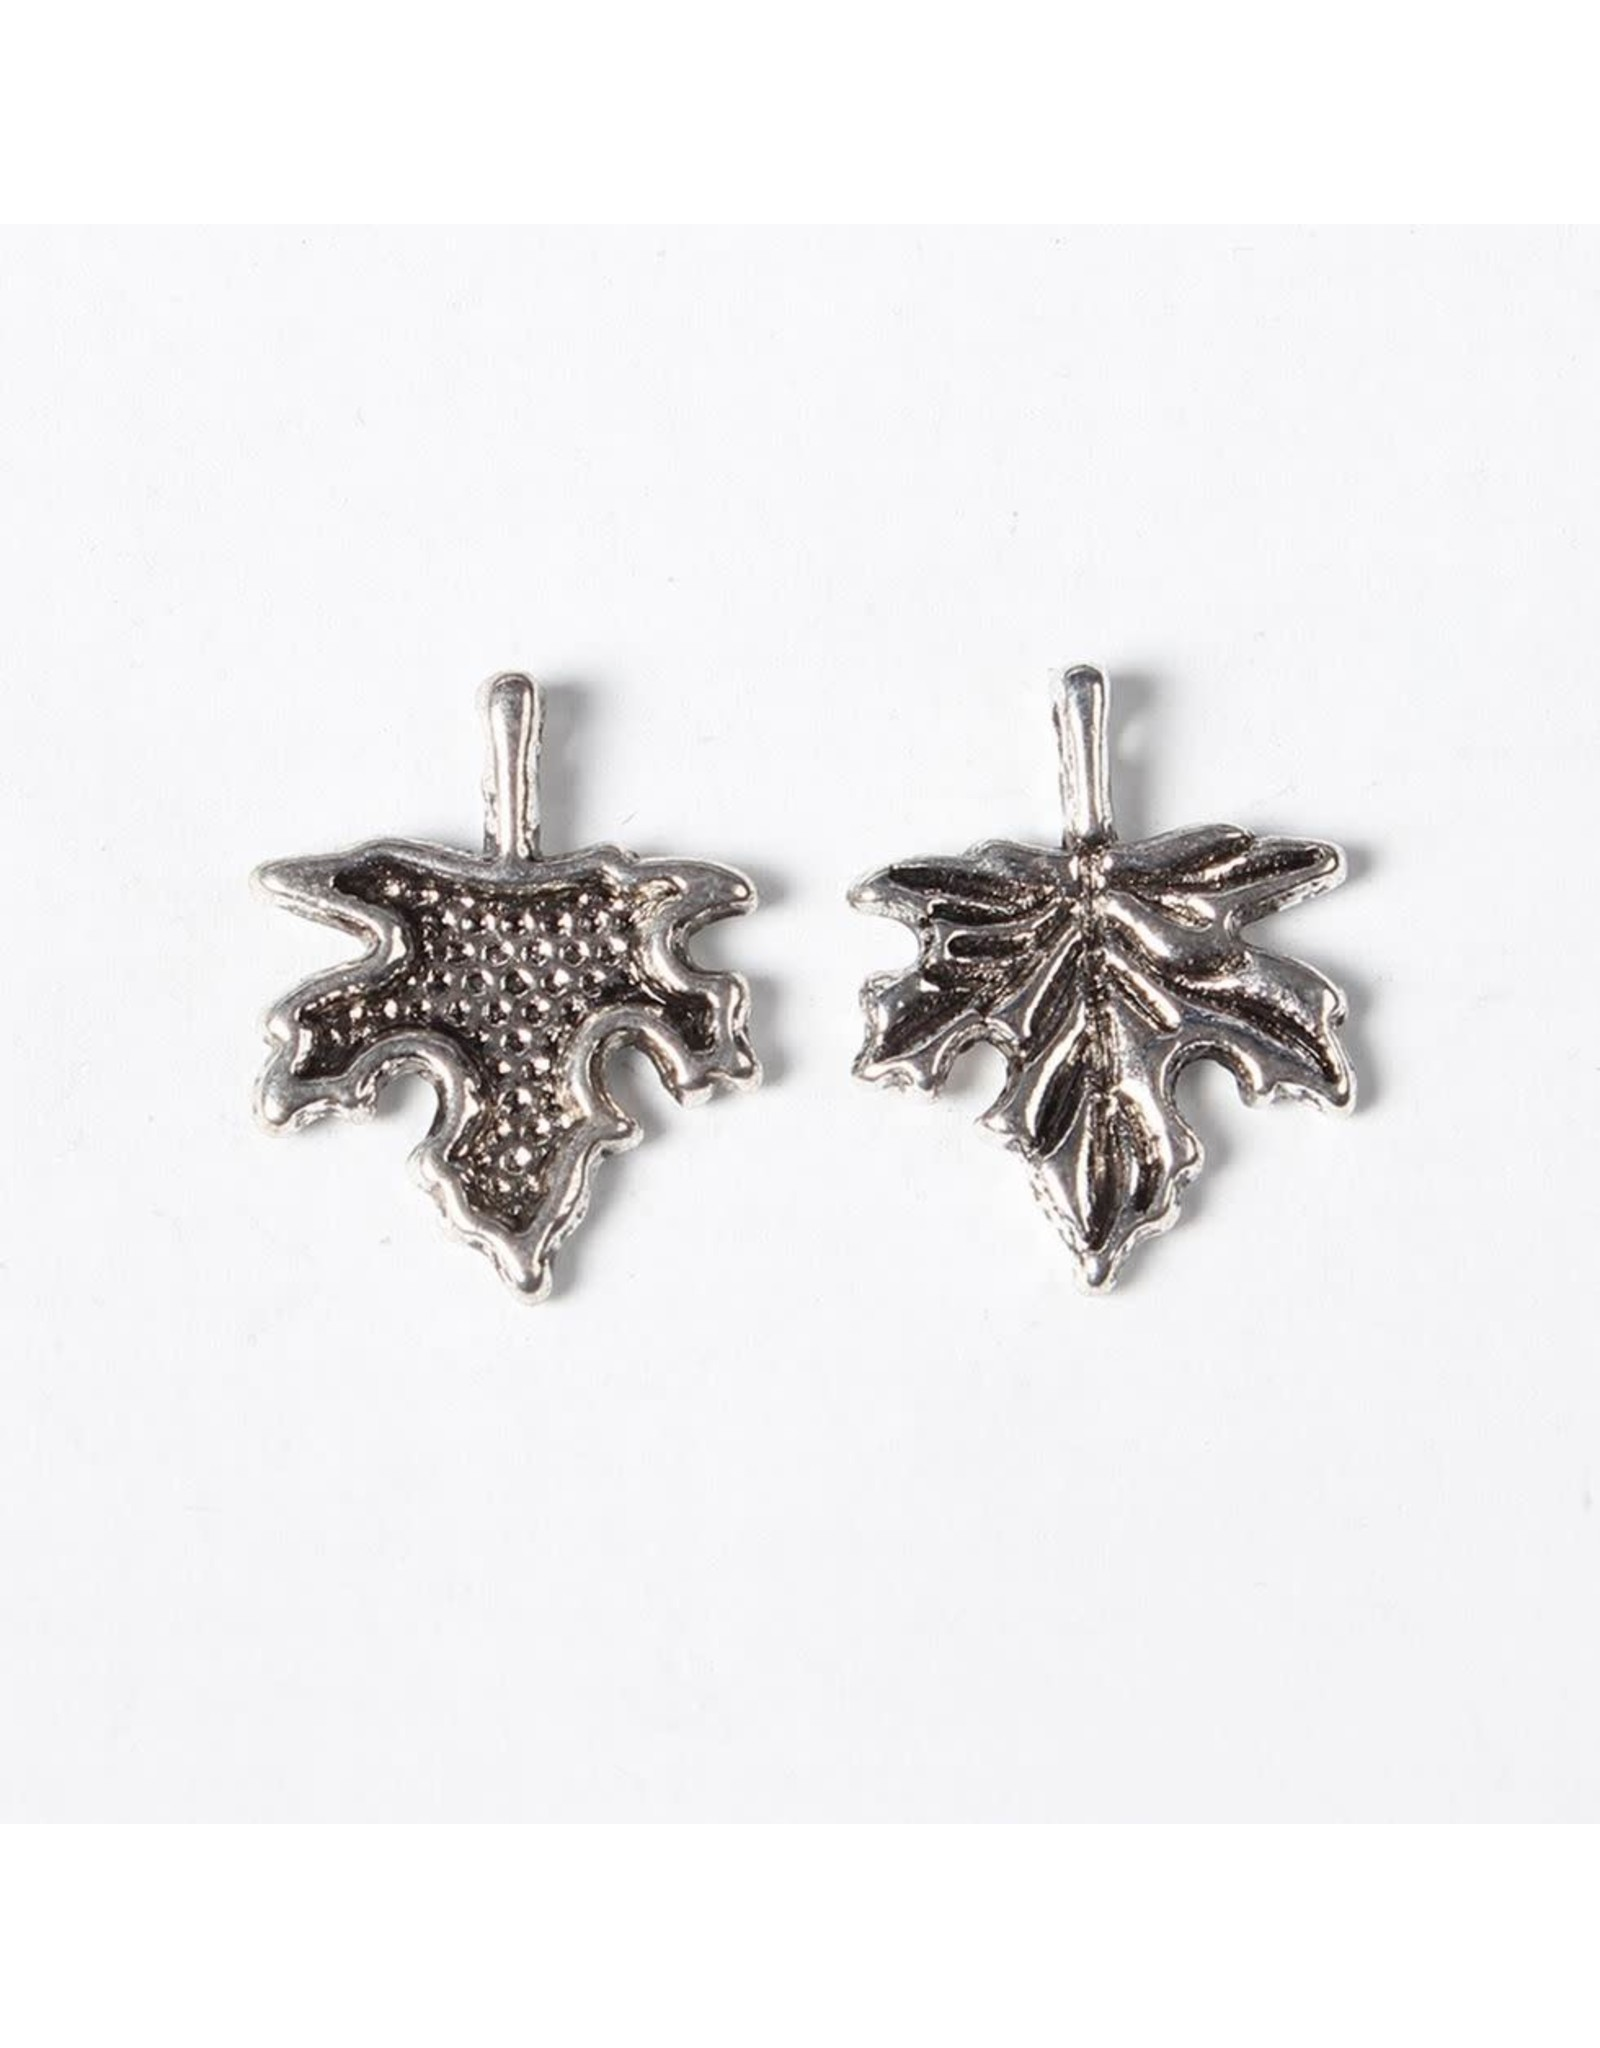 Maple Leaf  17x14mm Antique Silver   NF  x10